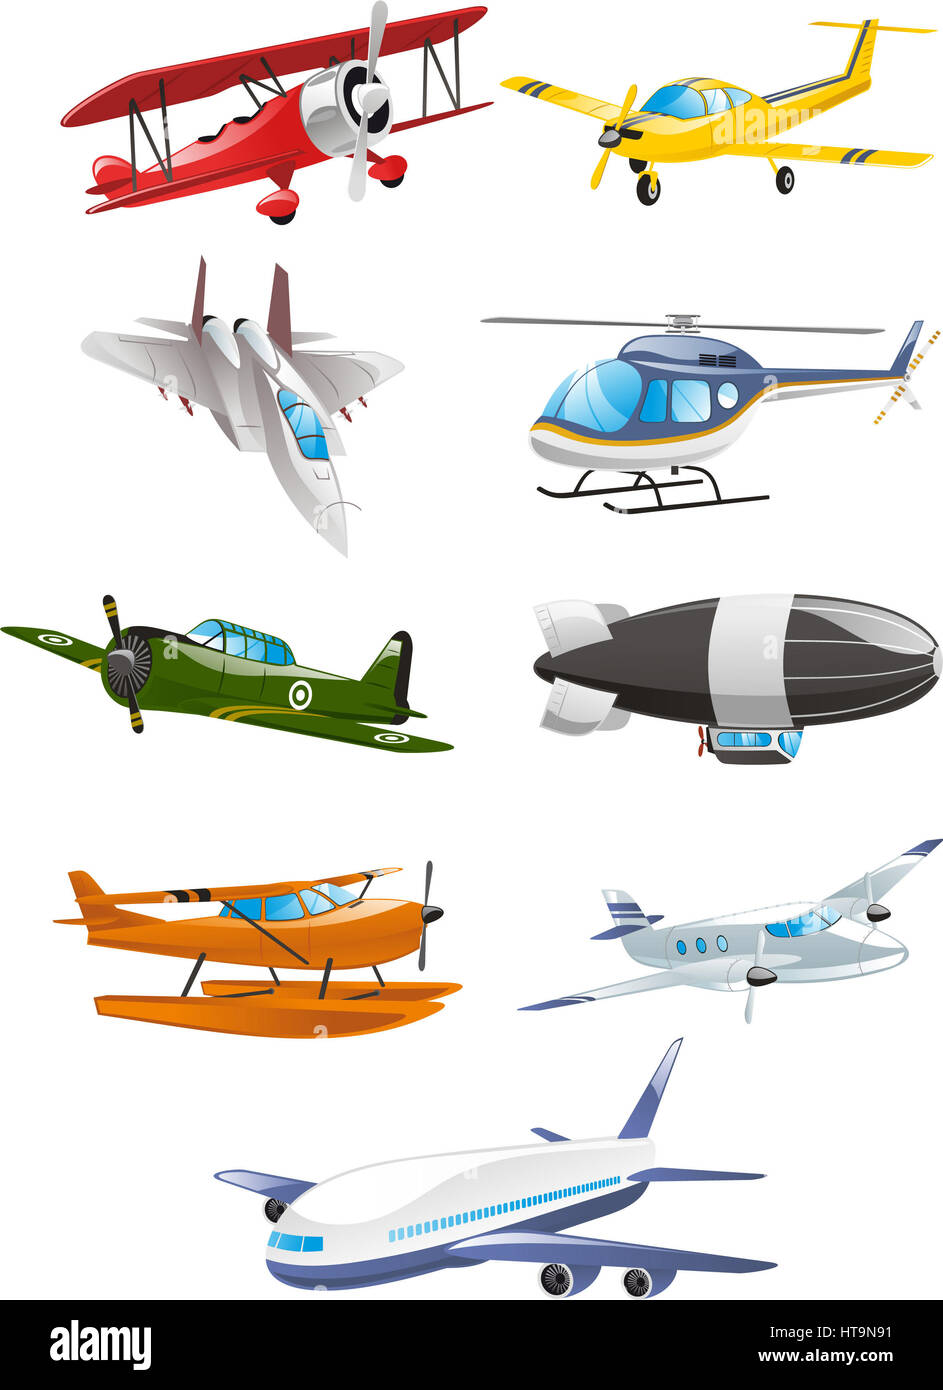 Airplane collection, with aircraft, airbus, airliner, large gasbags, airship, fixed wing aircraft, monoplane, biplane, - Stock Image